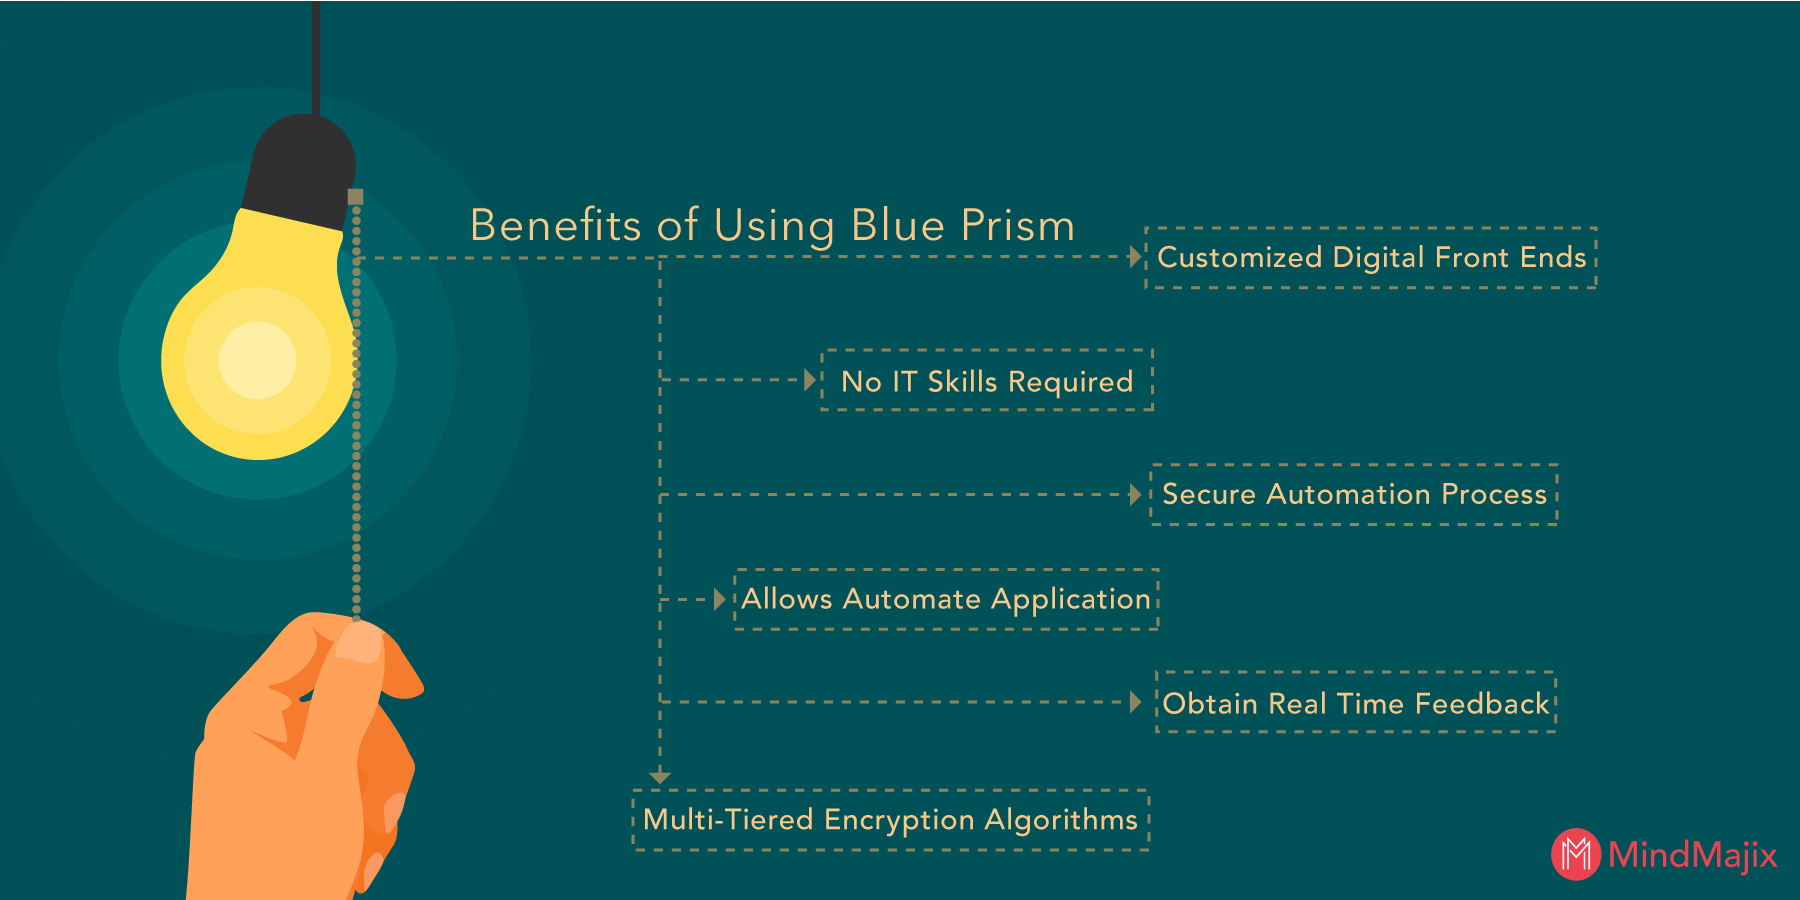 Benefits of using Blue Prism